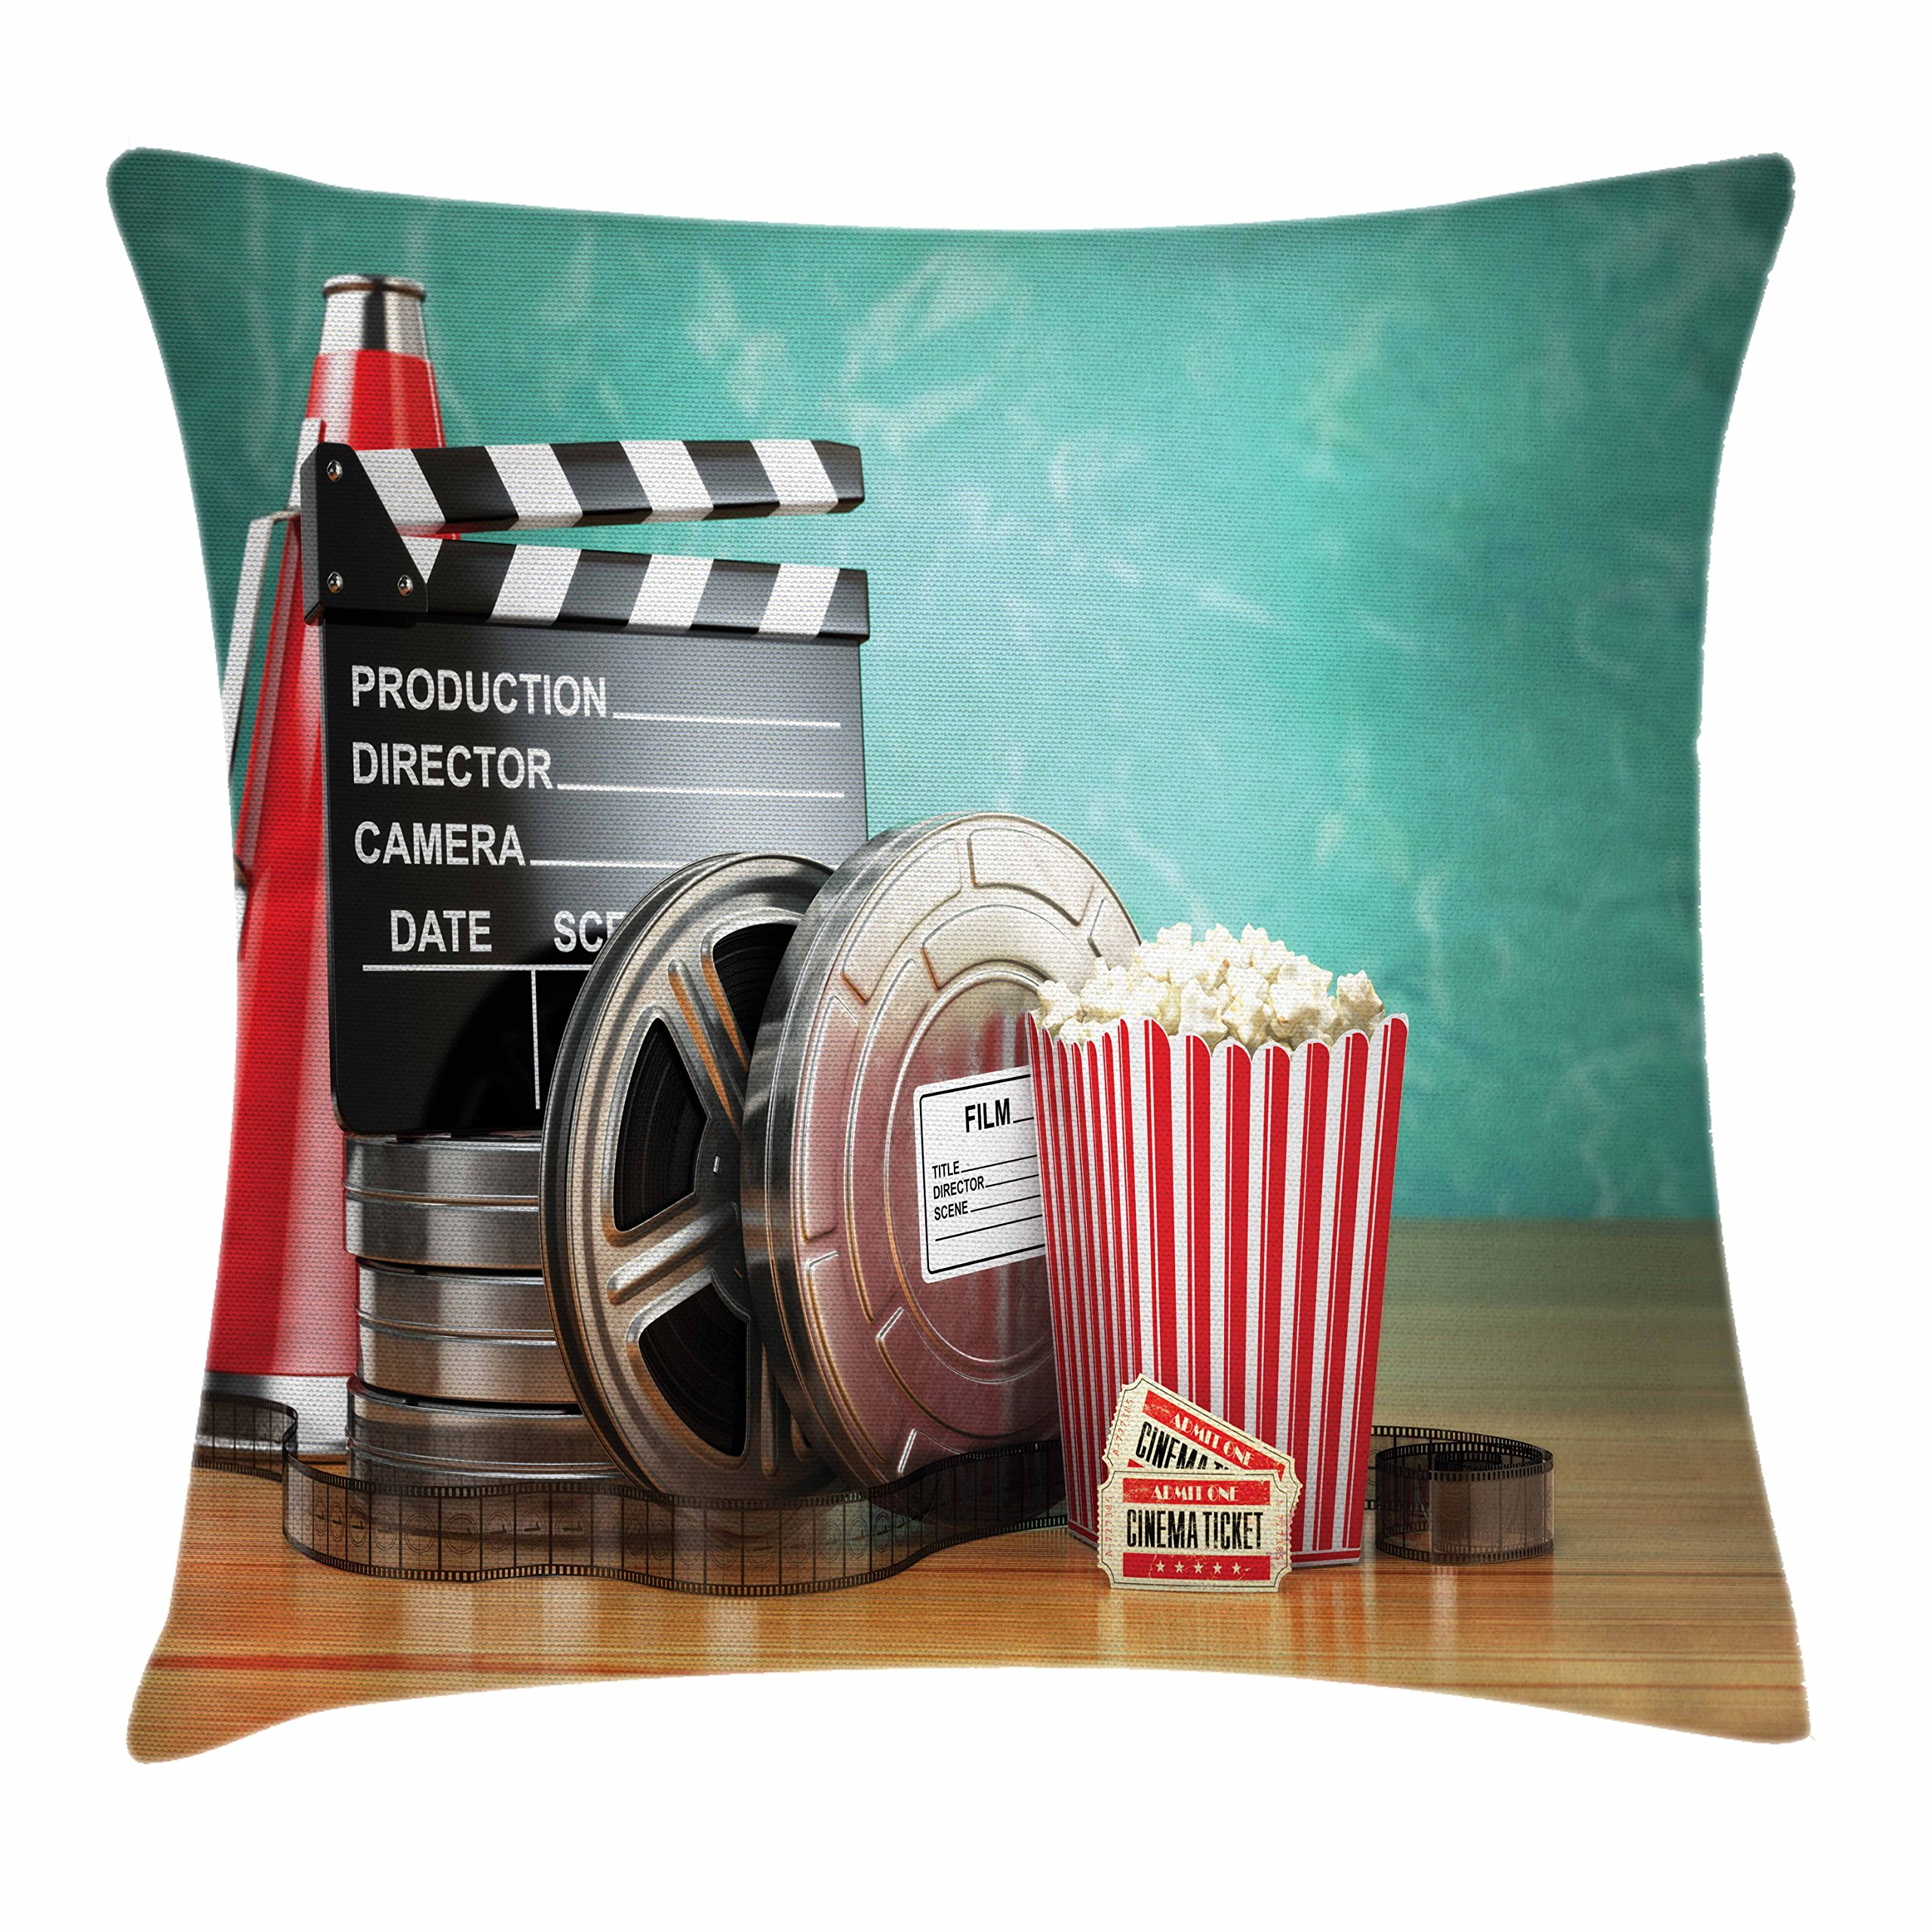 Ambesonne Movie Theater Throw Pillow Cushion Cover, Production Theme 3D Film Reels Clapperboard Tickets Popcorn and Megaphone, Decorative Square Accent Pillow Case, 24 X 24 inches, Multicolor